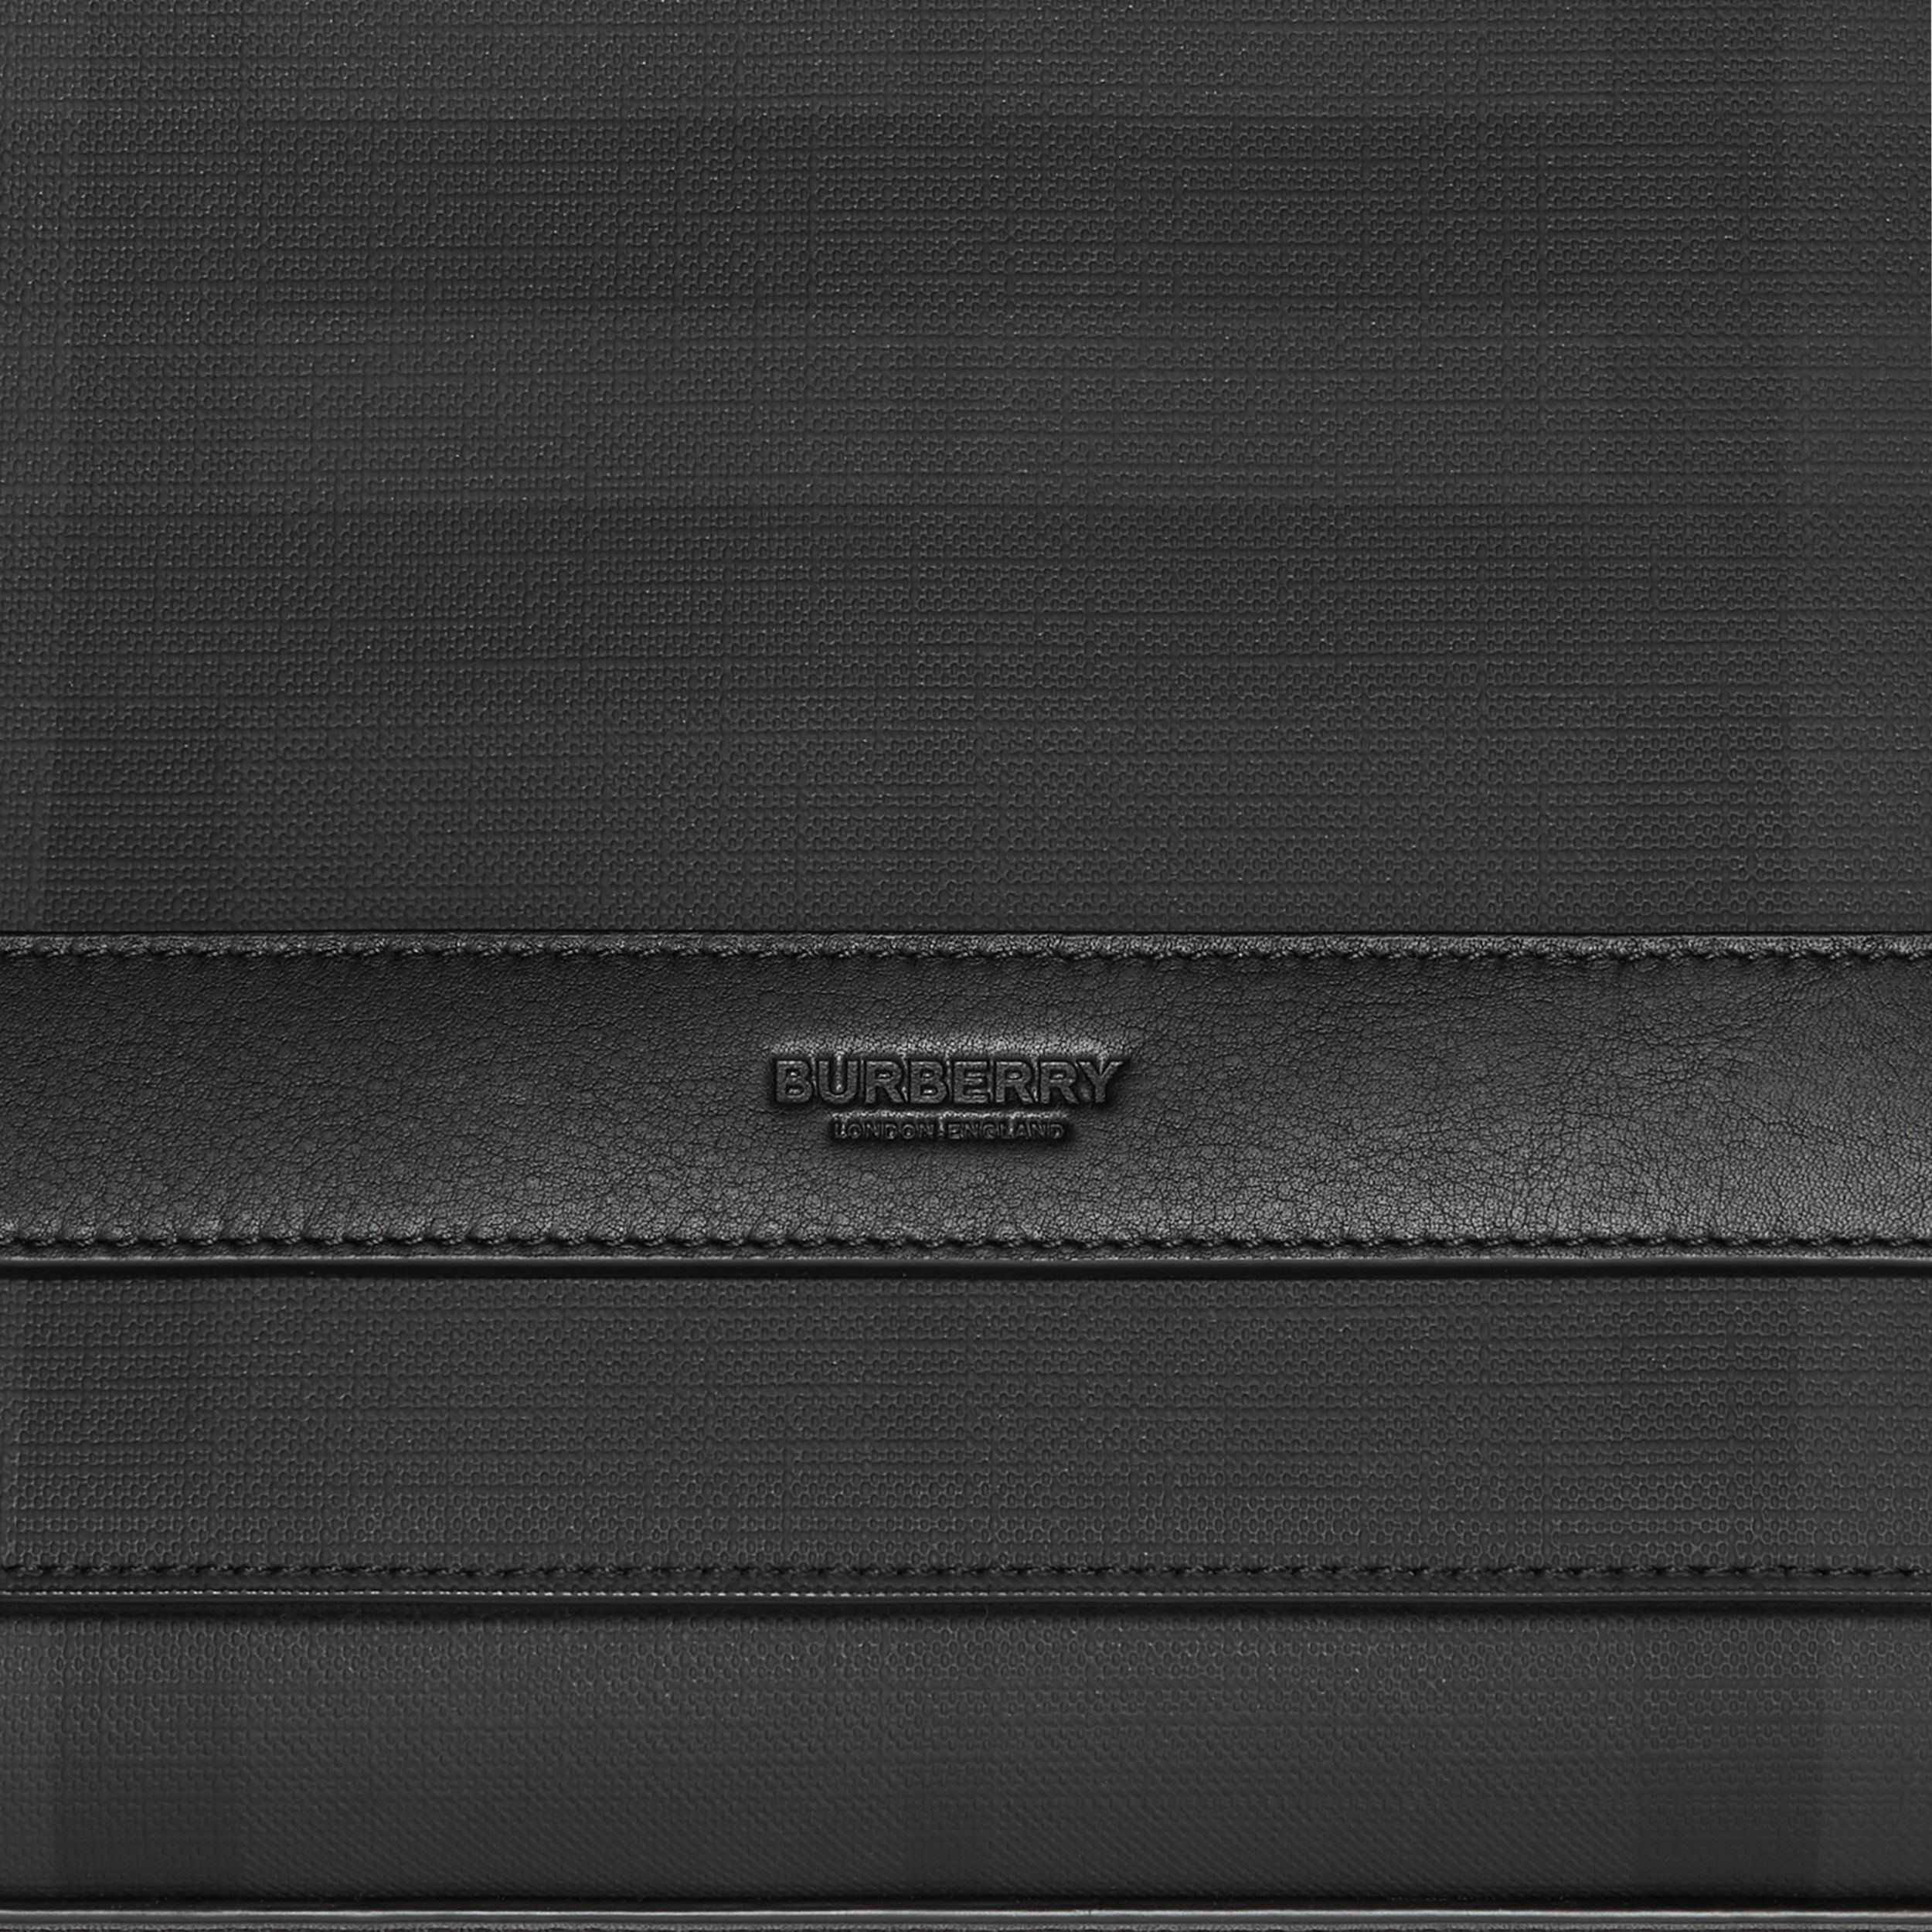 London Check and Leather Messenger Bag in Dark Charcoal - Men | Burberry - 2